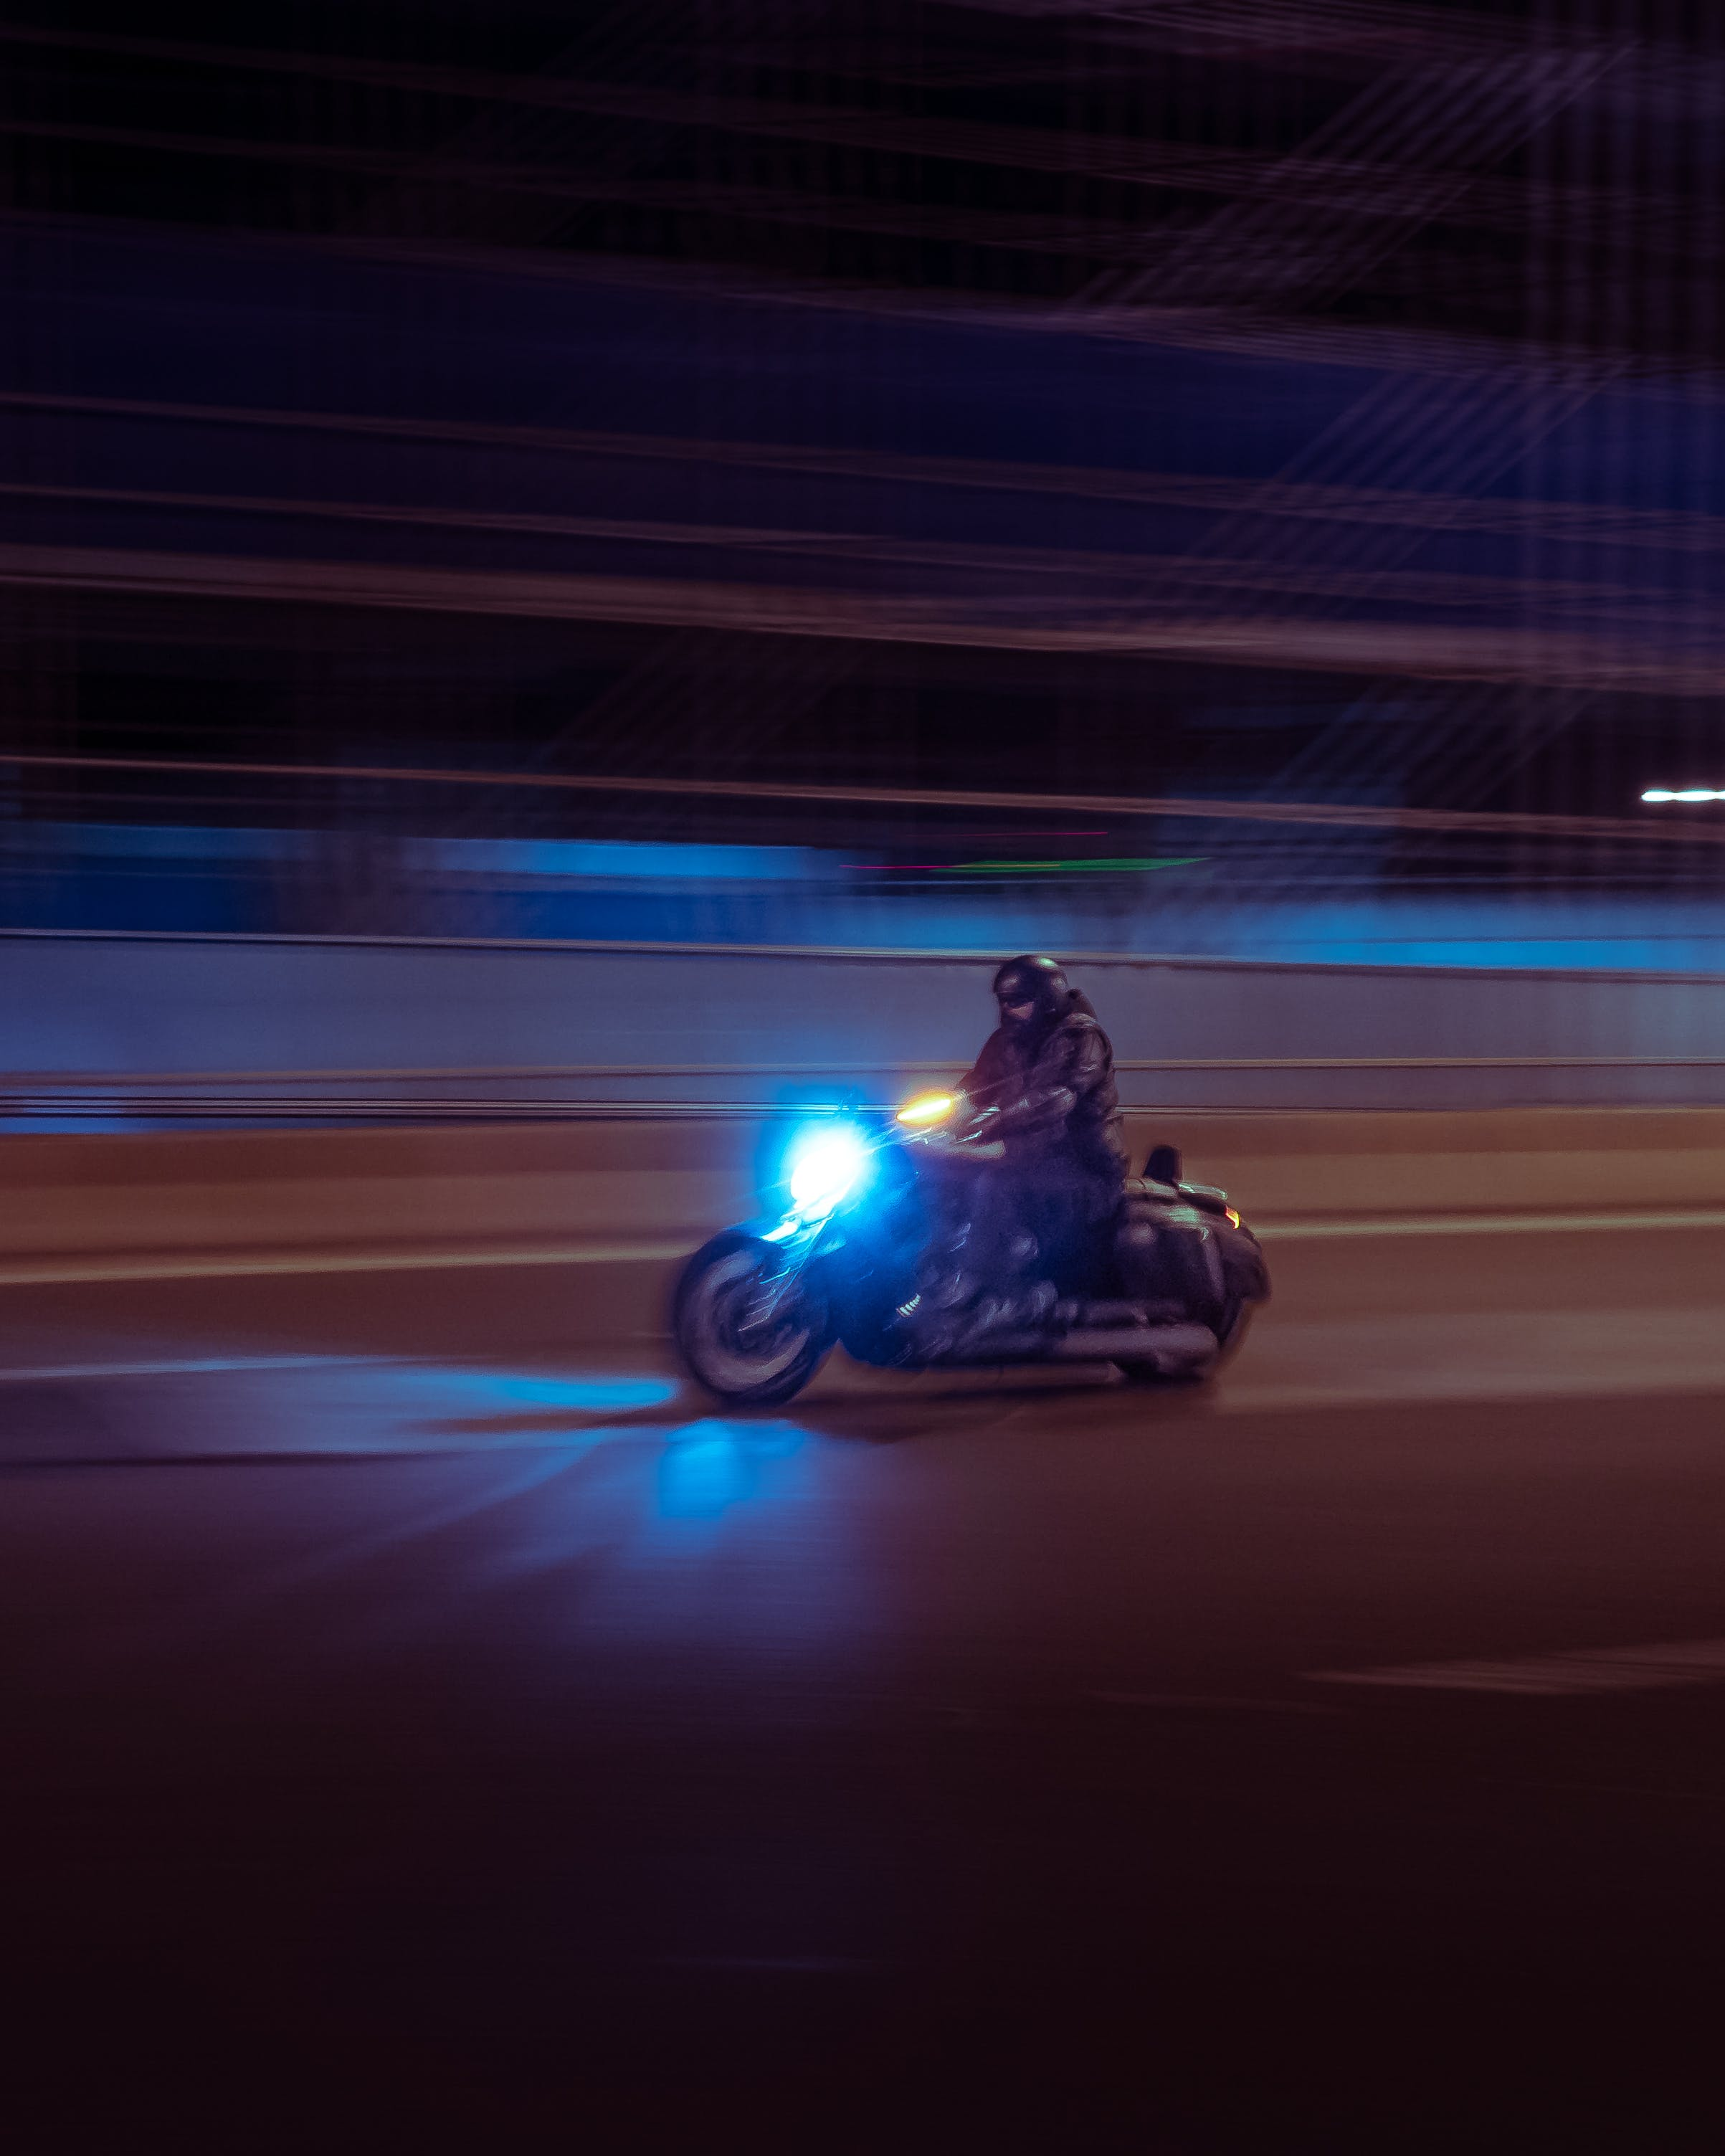 Person Riding on Black Motorcycle